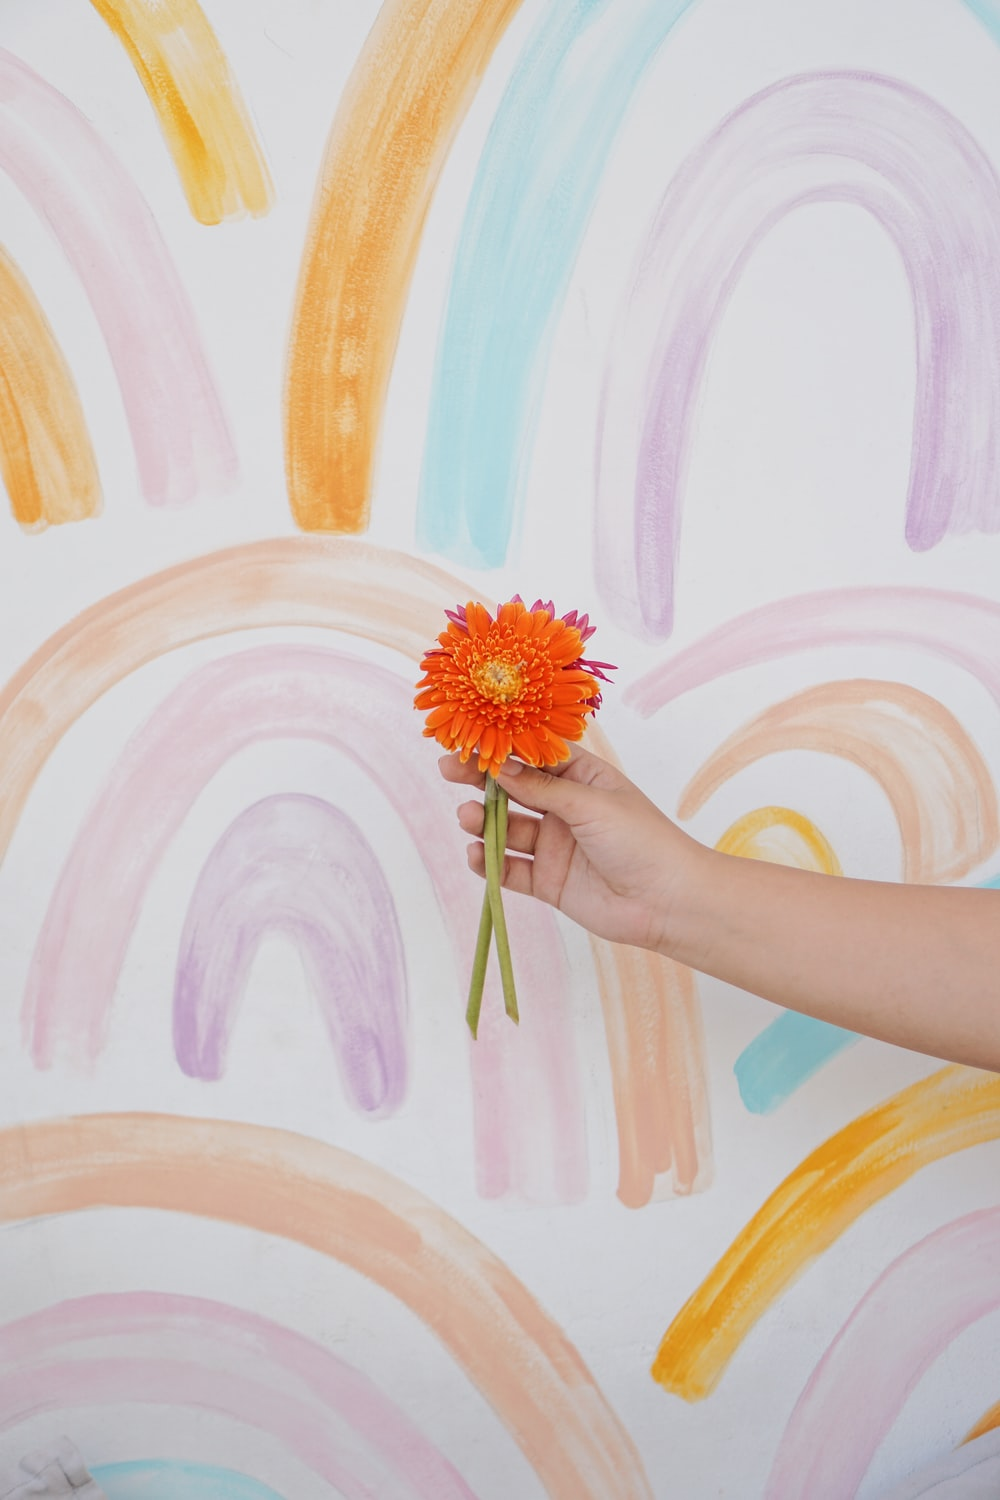 person holding pink and yellow flower